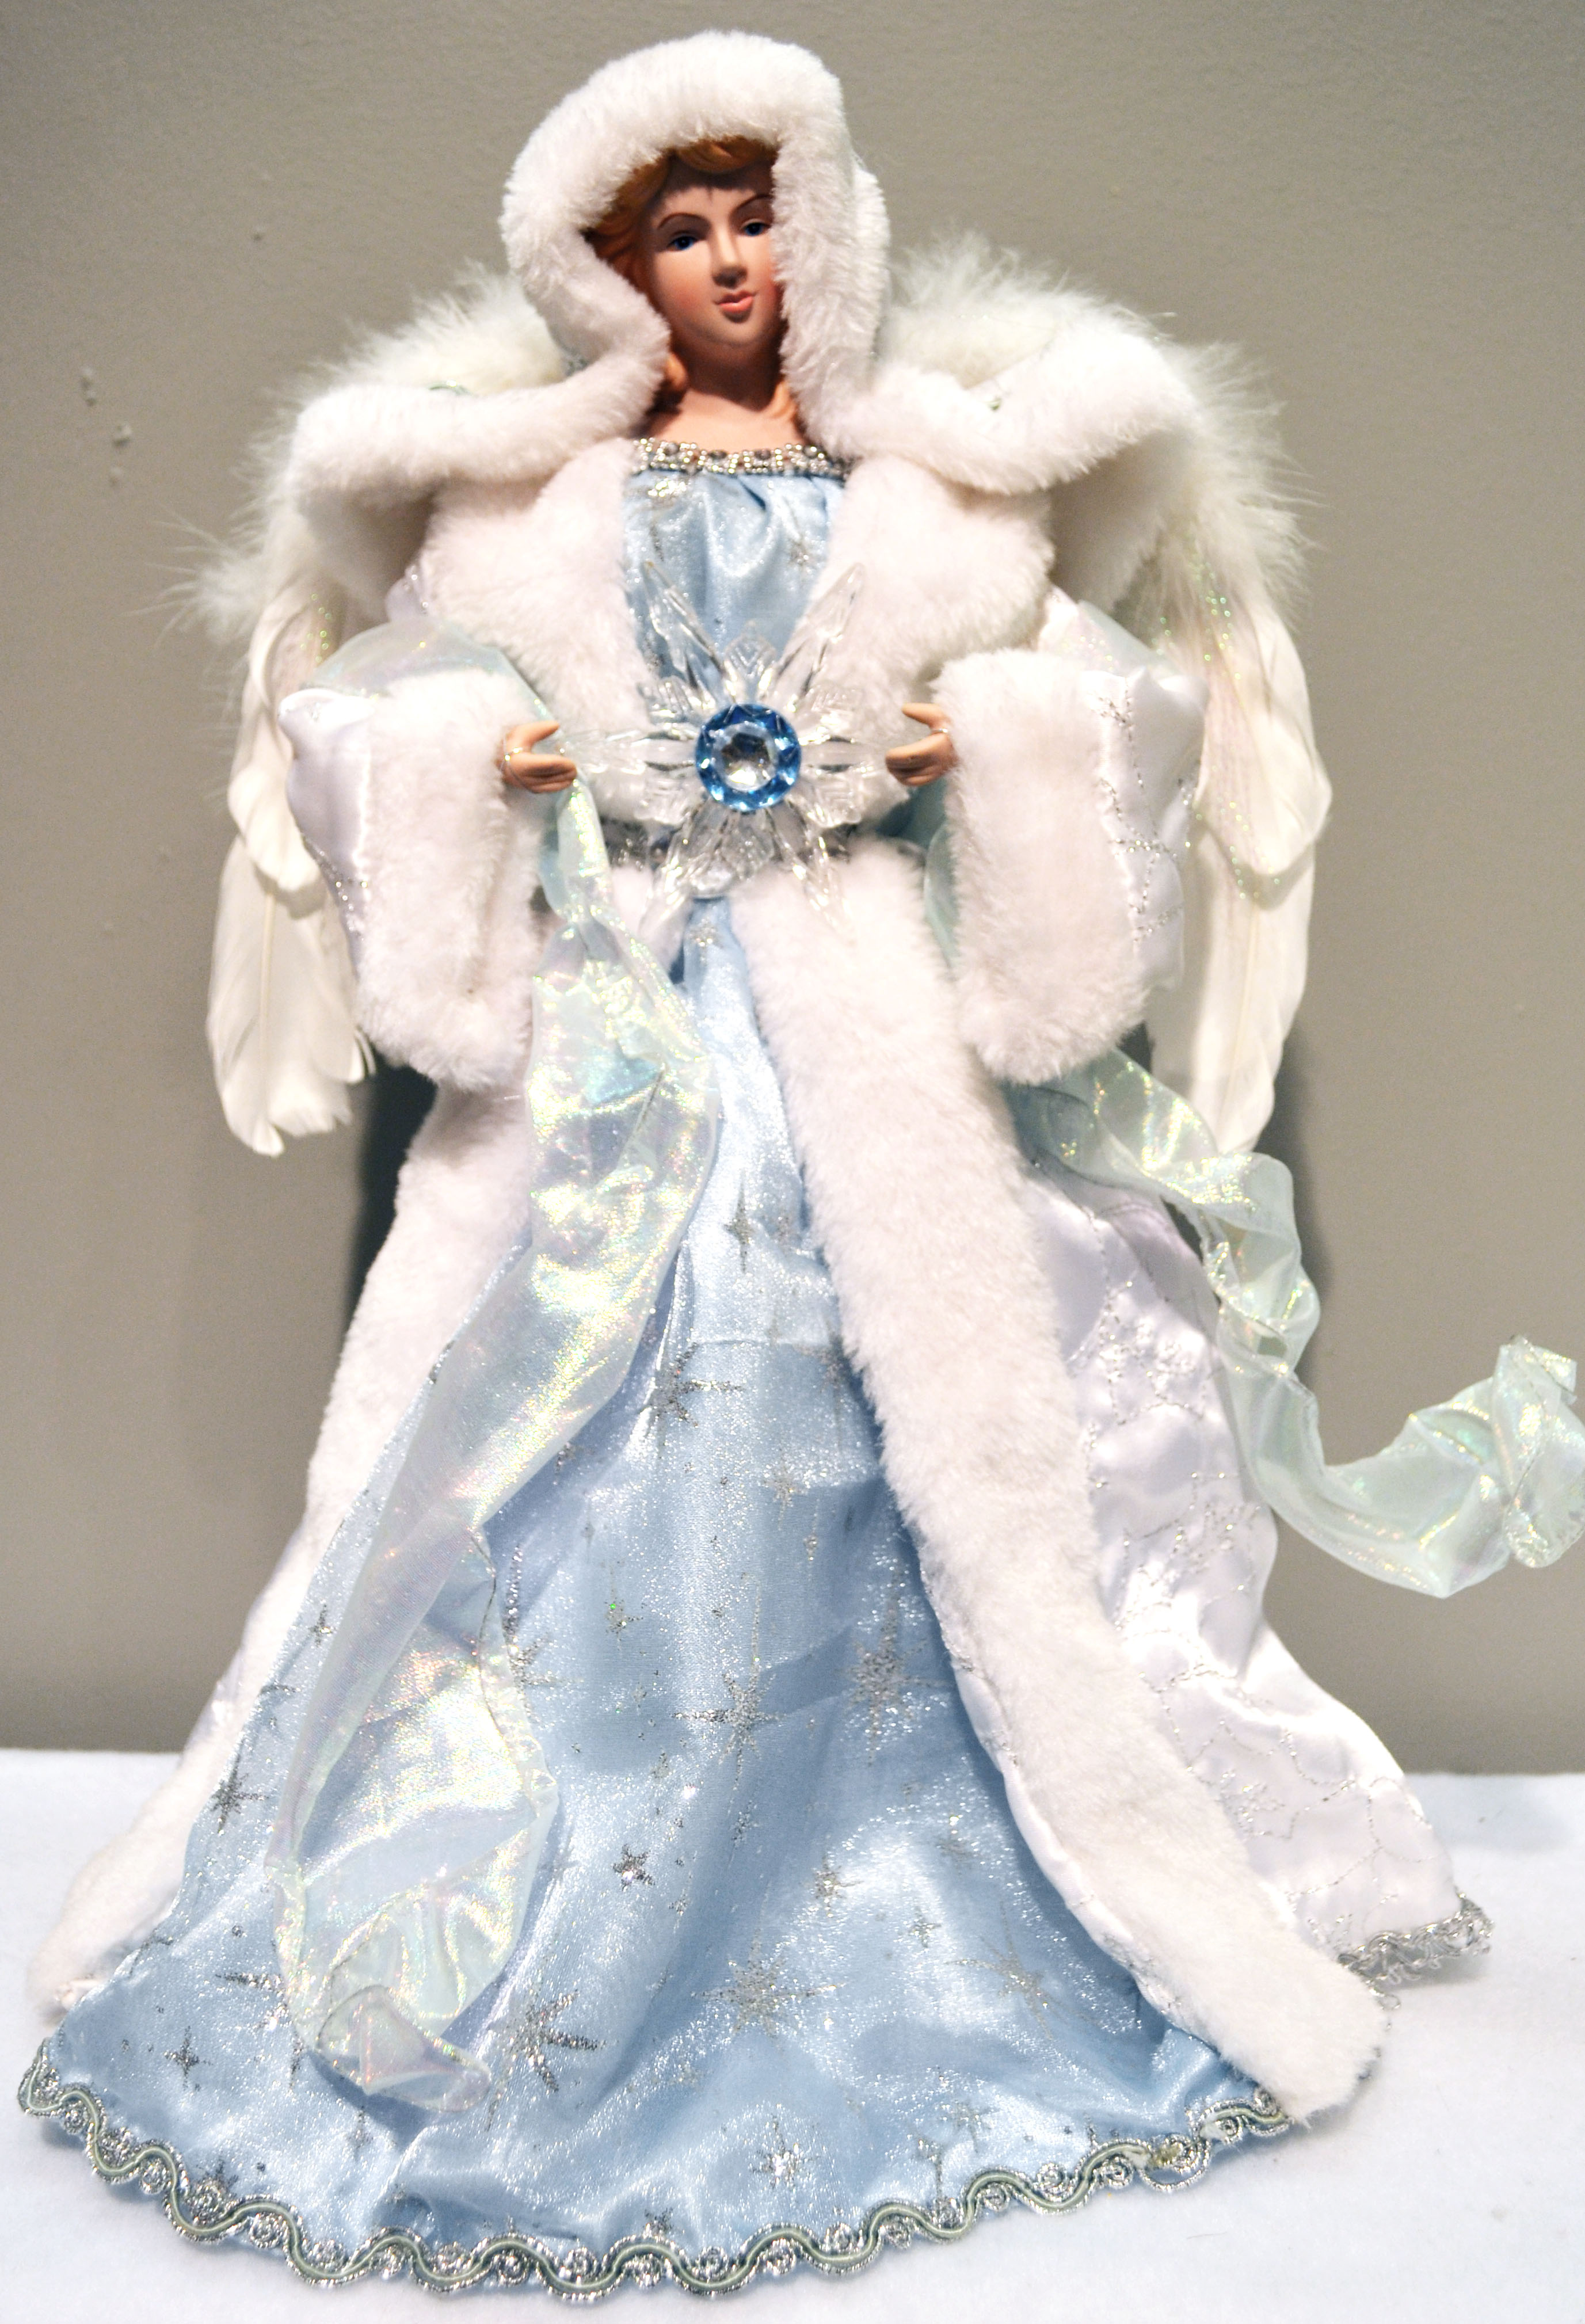 16 inch blue and white snowflake angel tree topper